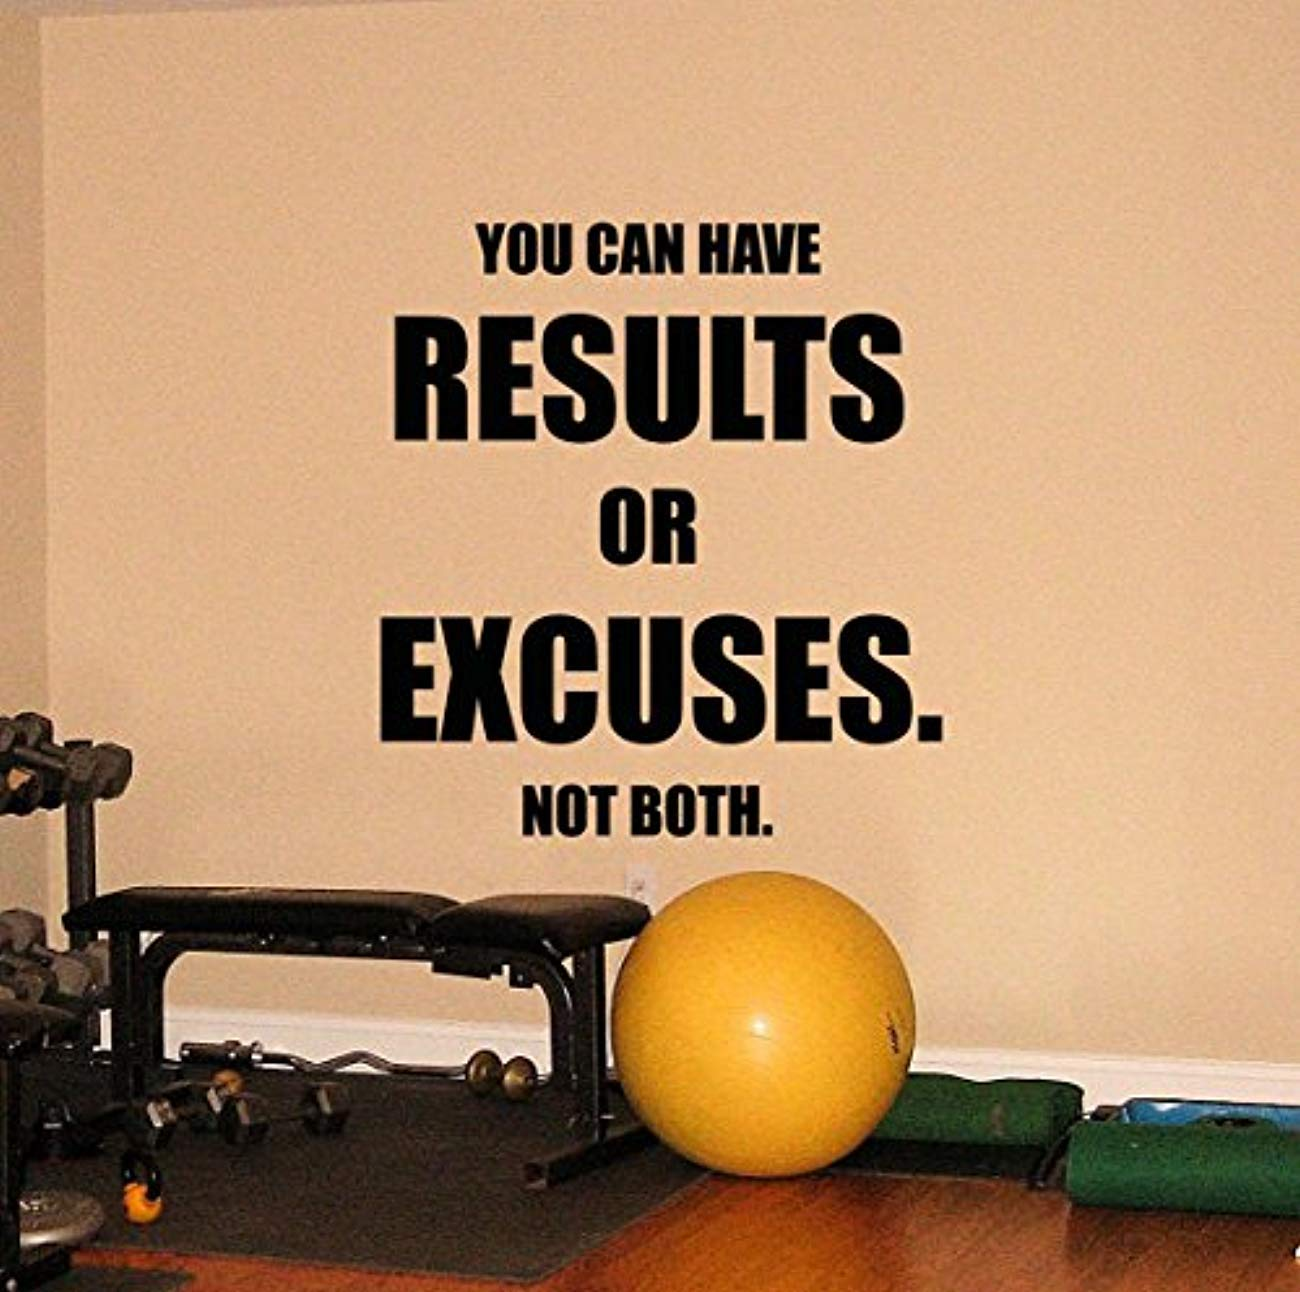 Amazon.com: Wall Vinyl Decal Fitness Gym You Can Have Results Or ...